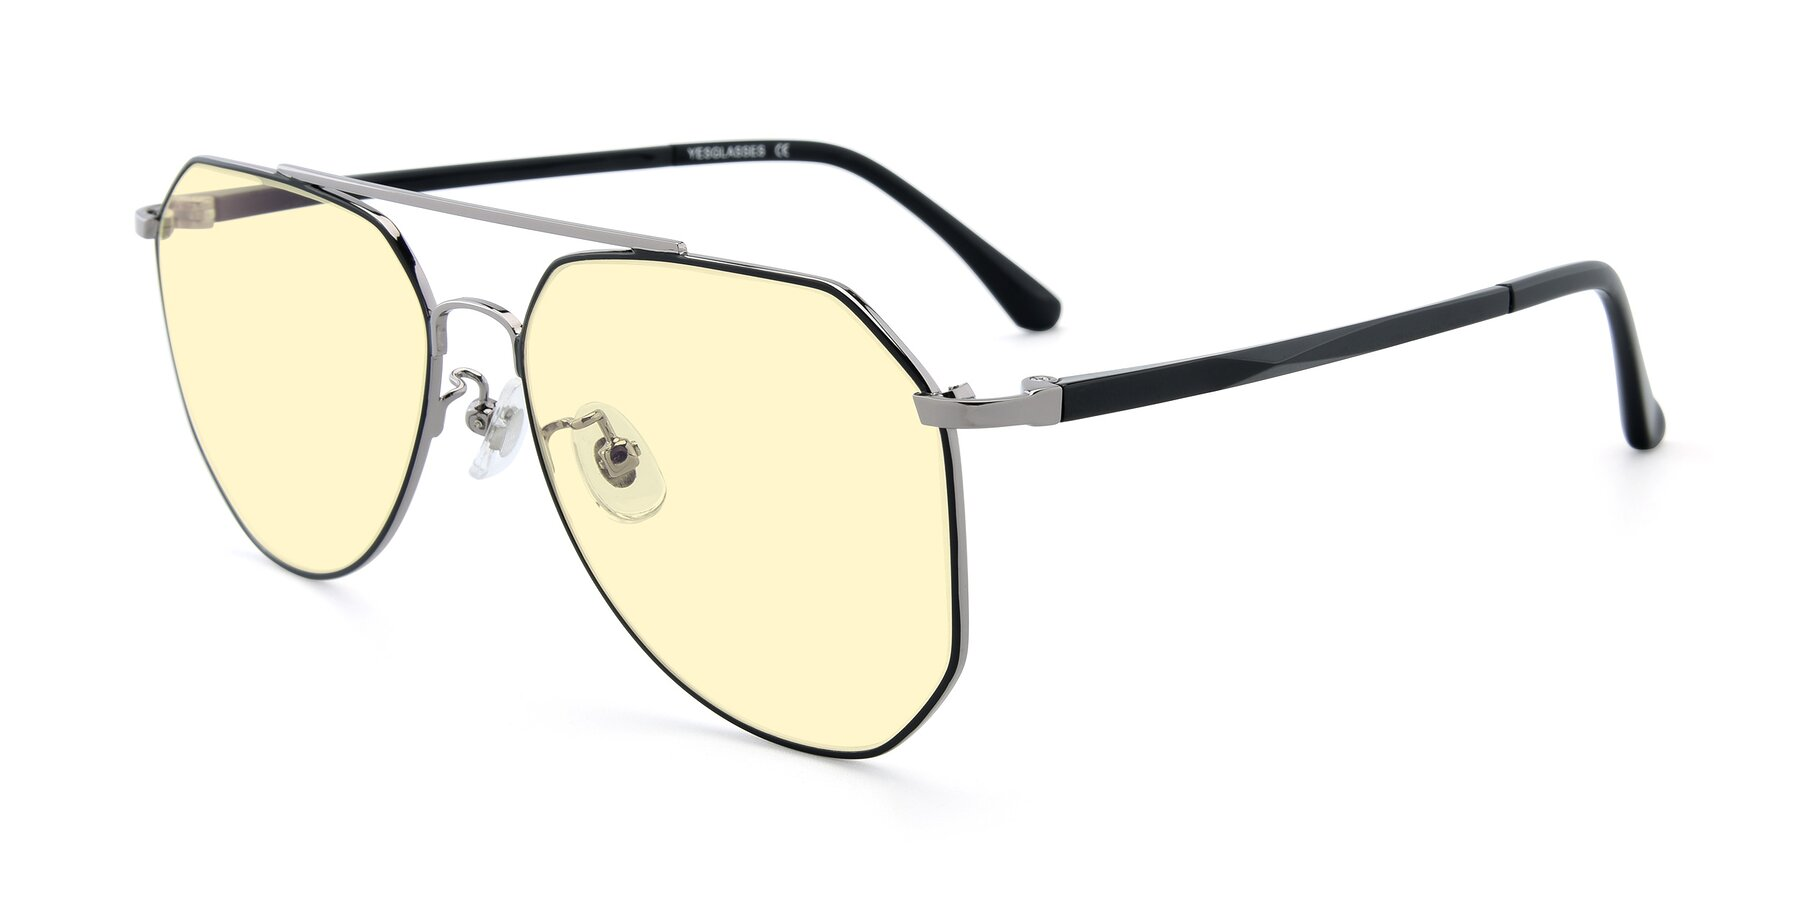 Angle of XC-8040 in Black/ Gun with Light Yellow Tinted Lenses